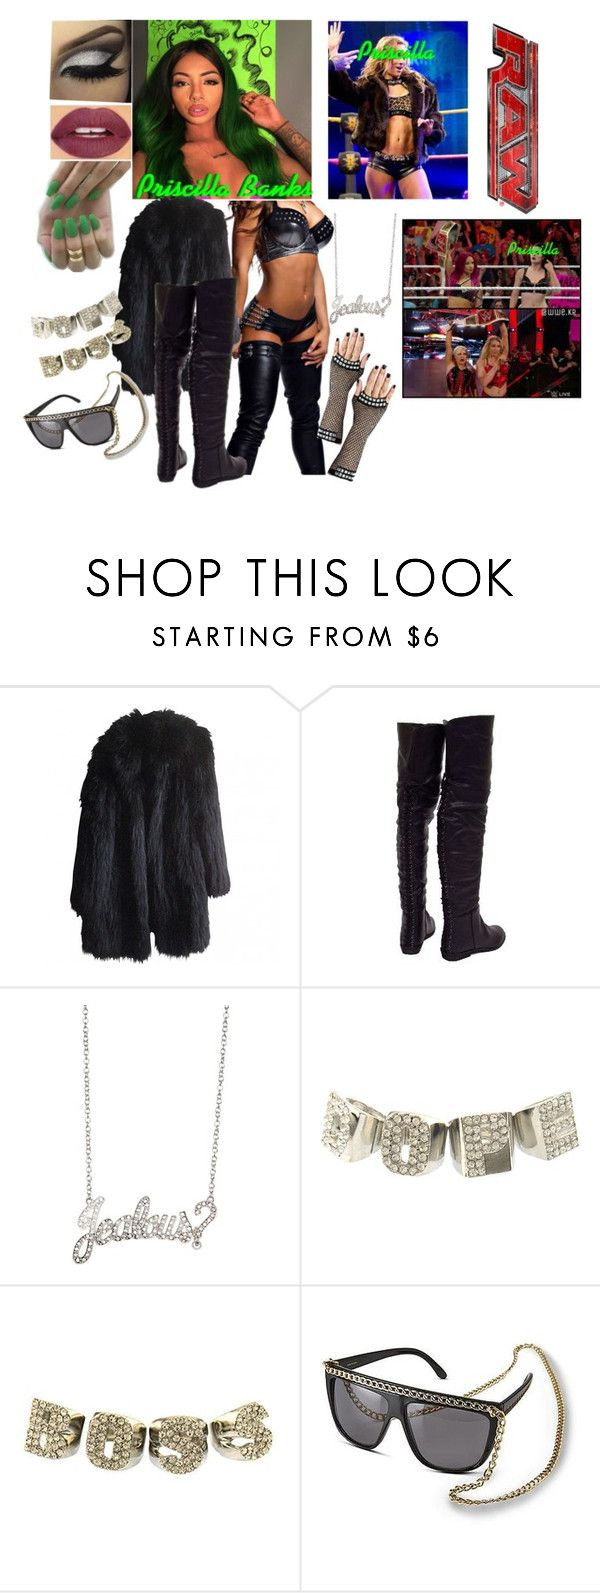 """💚Priscilla💚 Sasha Comes to the Aid of Her Twin Sister ❌Extremely Late, I know🙄"" by black-onyxx ❤ liked on Polyvore featuring WWE, Sonia Rykiel, Rock Rebel, Nicki Minaj, Carmella and TNA"